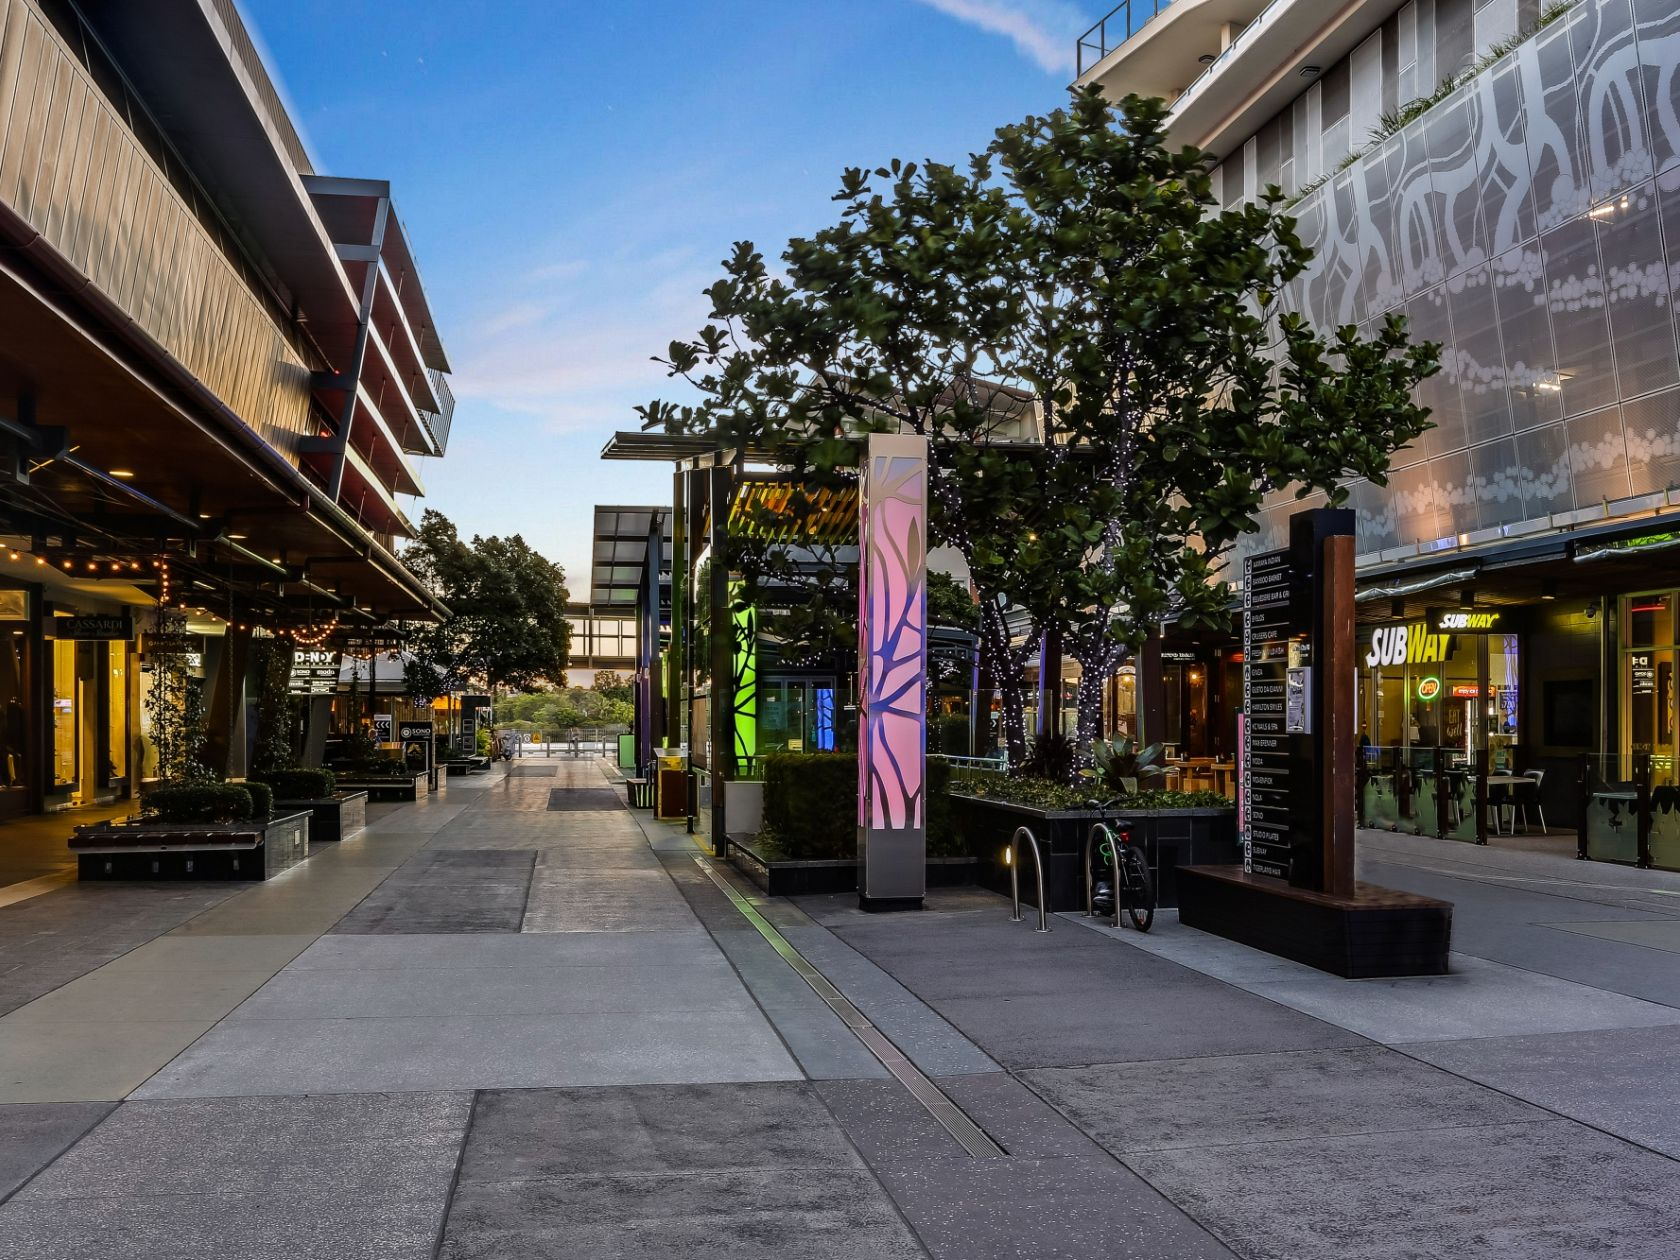 Business Only Management Rights of Scale in Landmark Portside Precinct